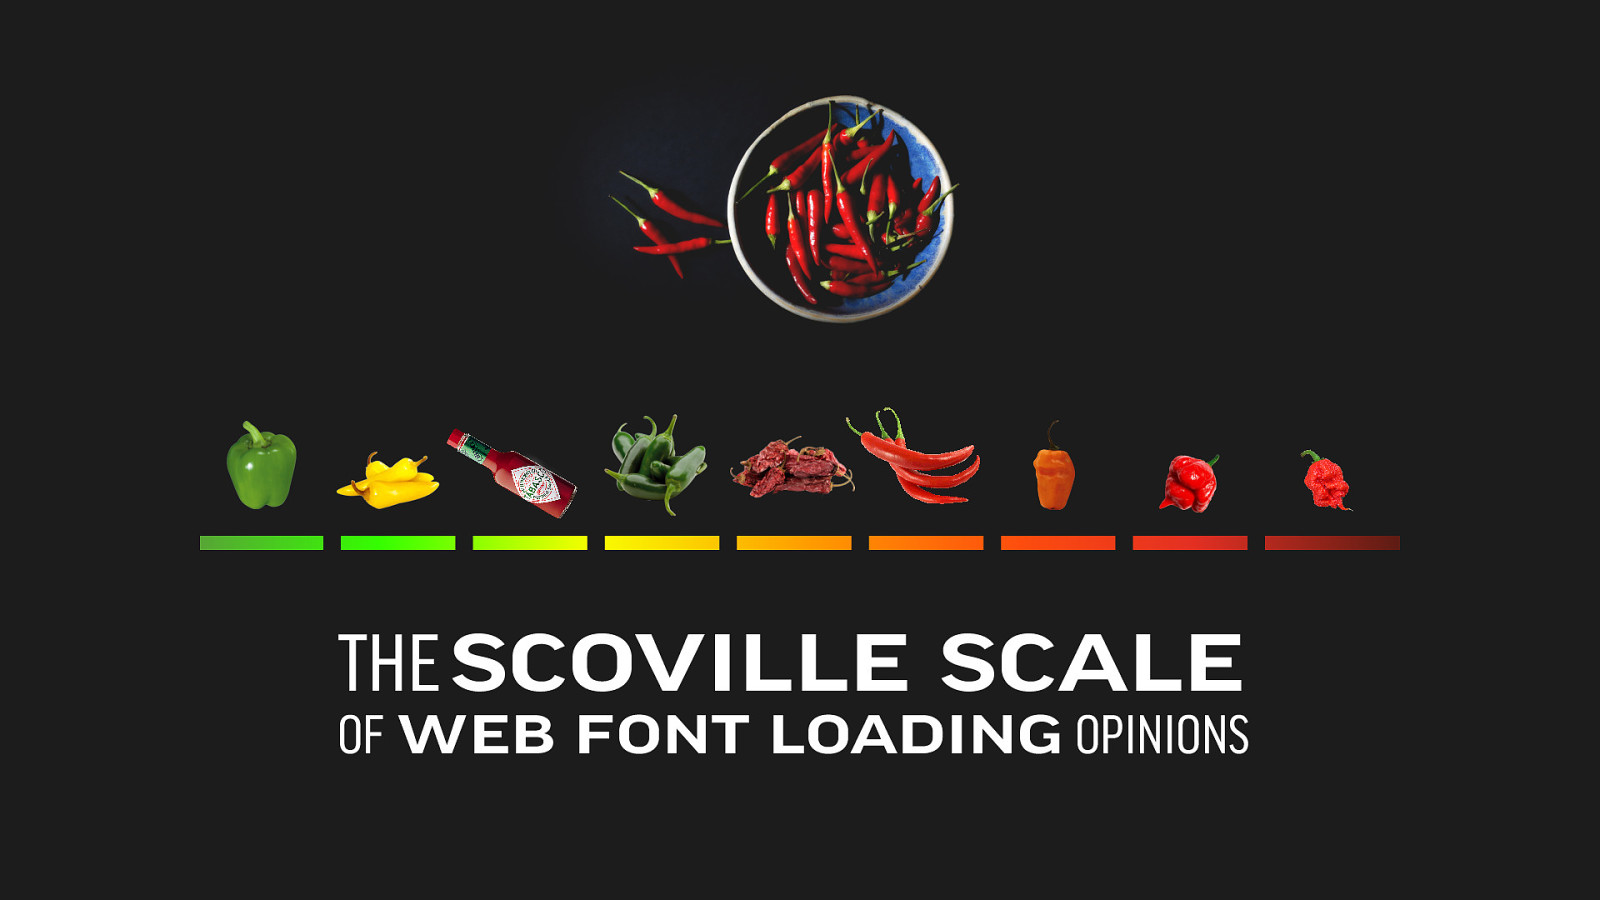 The Scoville Scale of Web Font Loading Opinions